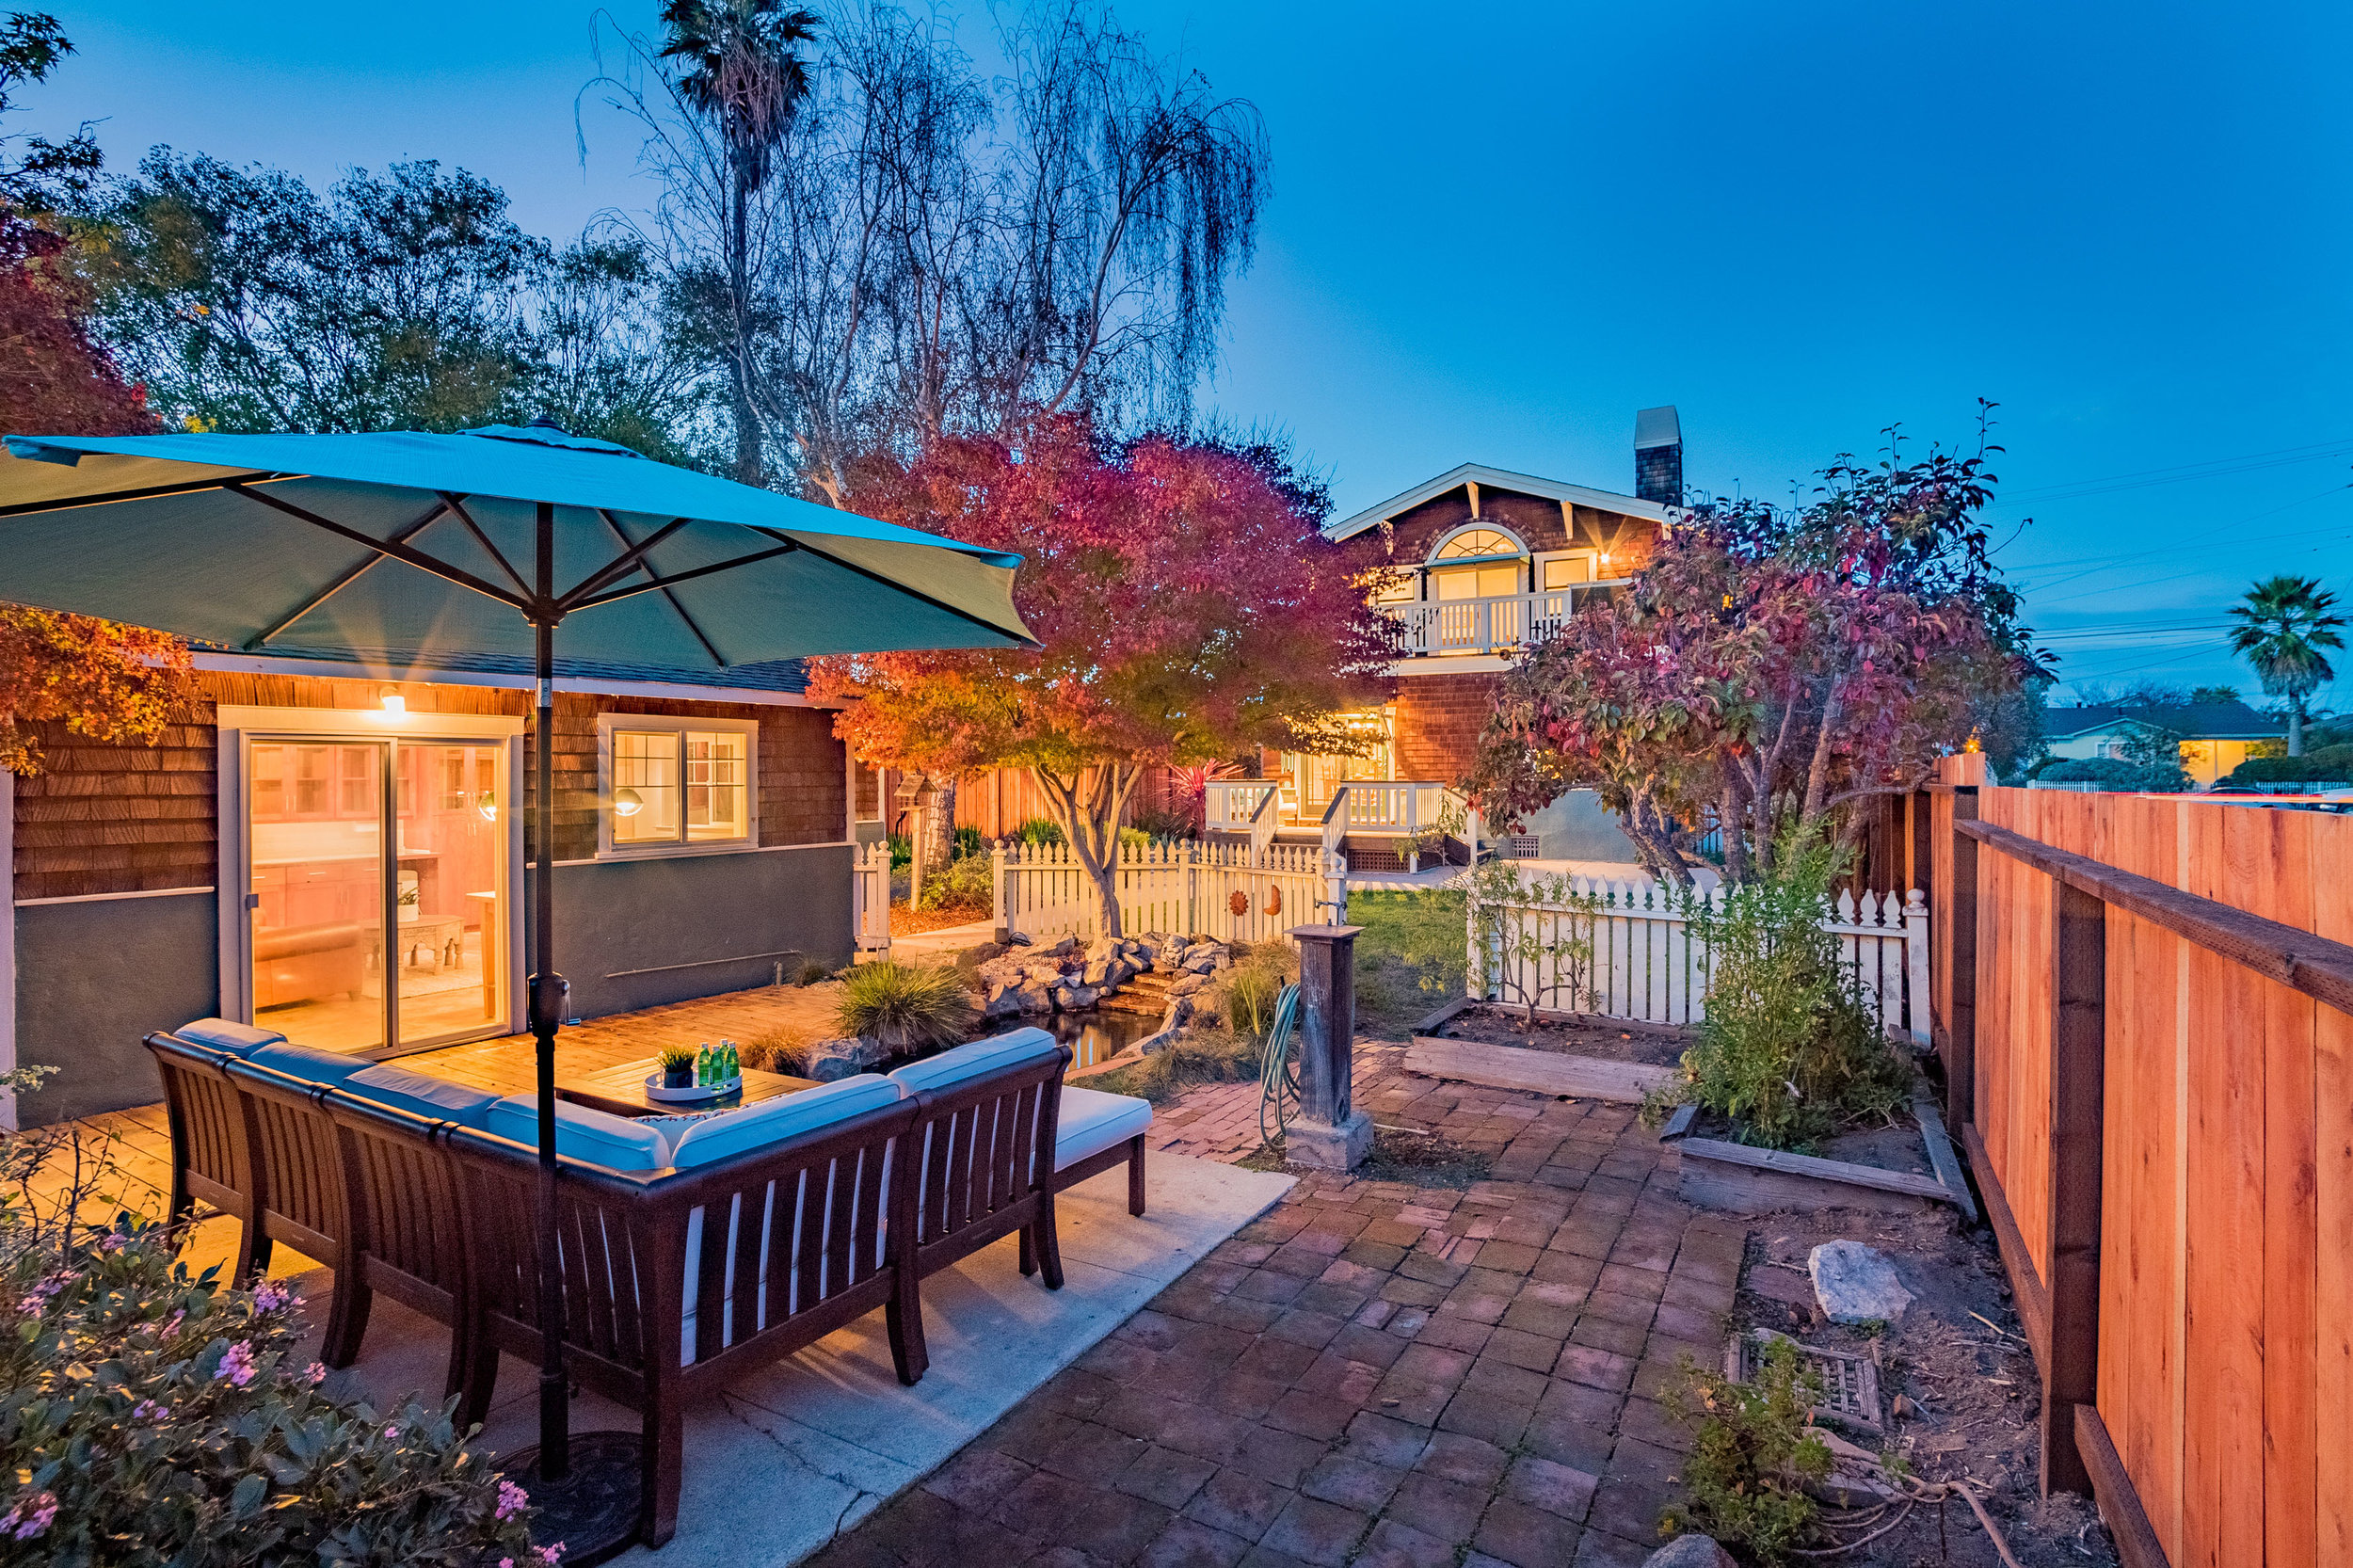 Three bedroom, two bathroom Craftsman Style Home on Santa Cruz's Lower Westside.  The perfect location close to Highway 1, West Cliff Drive, and the ocean!  Presented by Sam Bird-Robinson, Santa Cruz Realtor of Sereno Group.